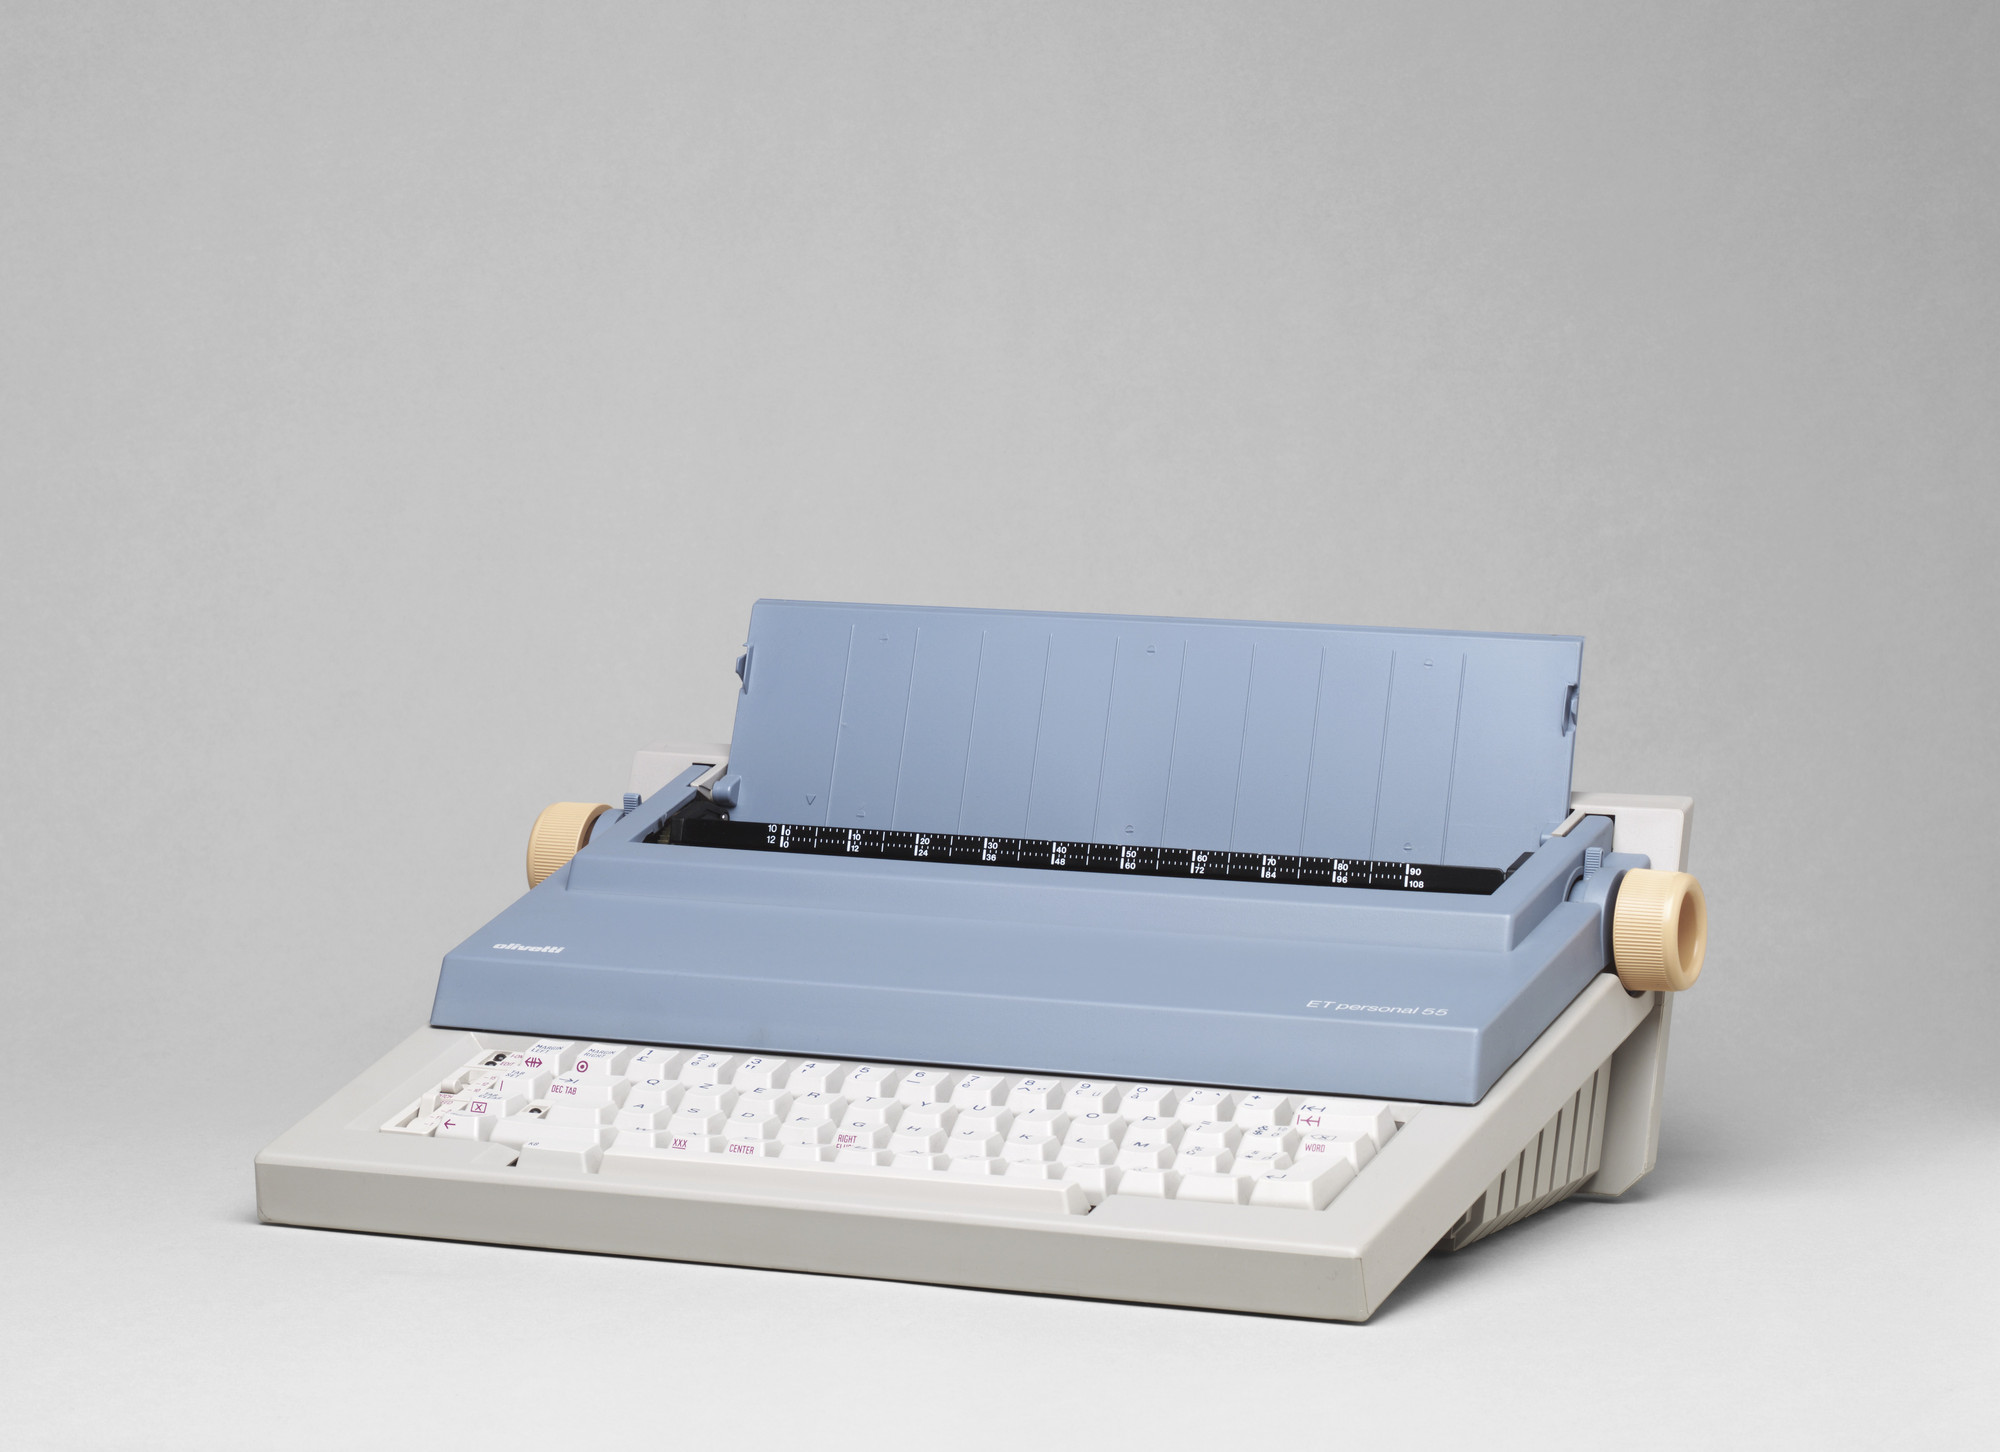 Mario Bellini. ETP 55 Portable Typewriter. 1985-86